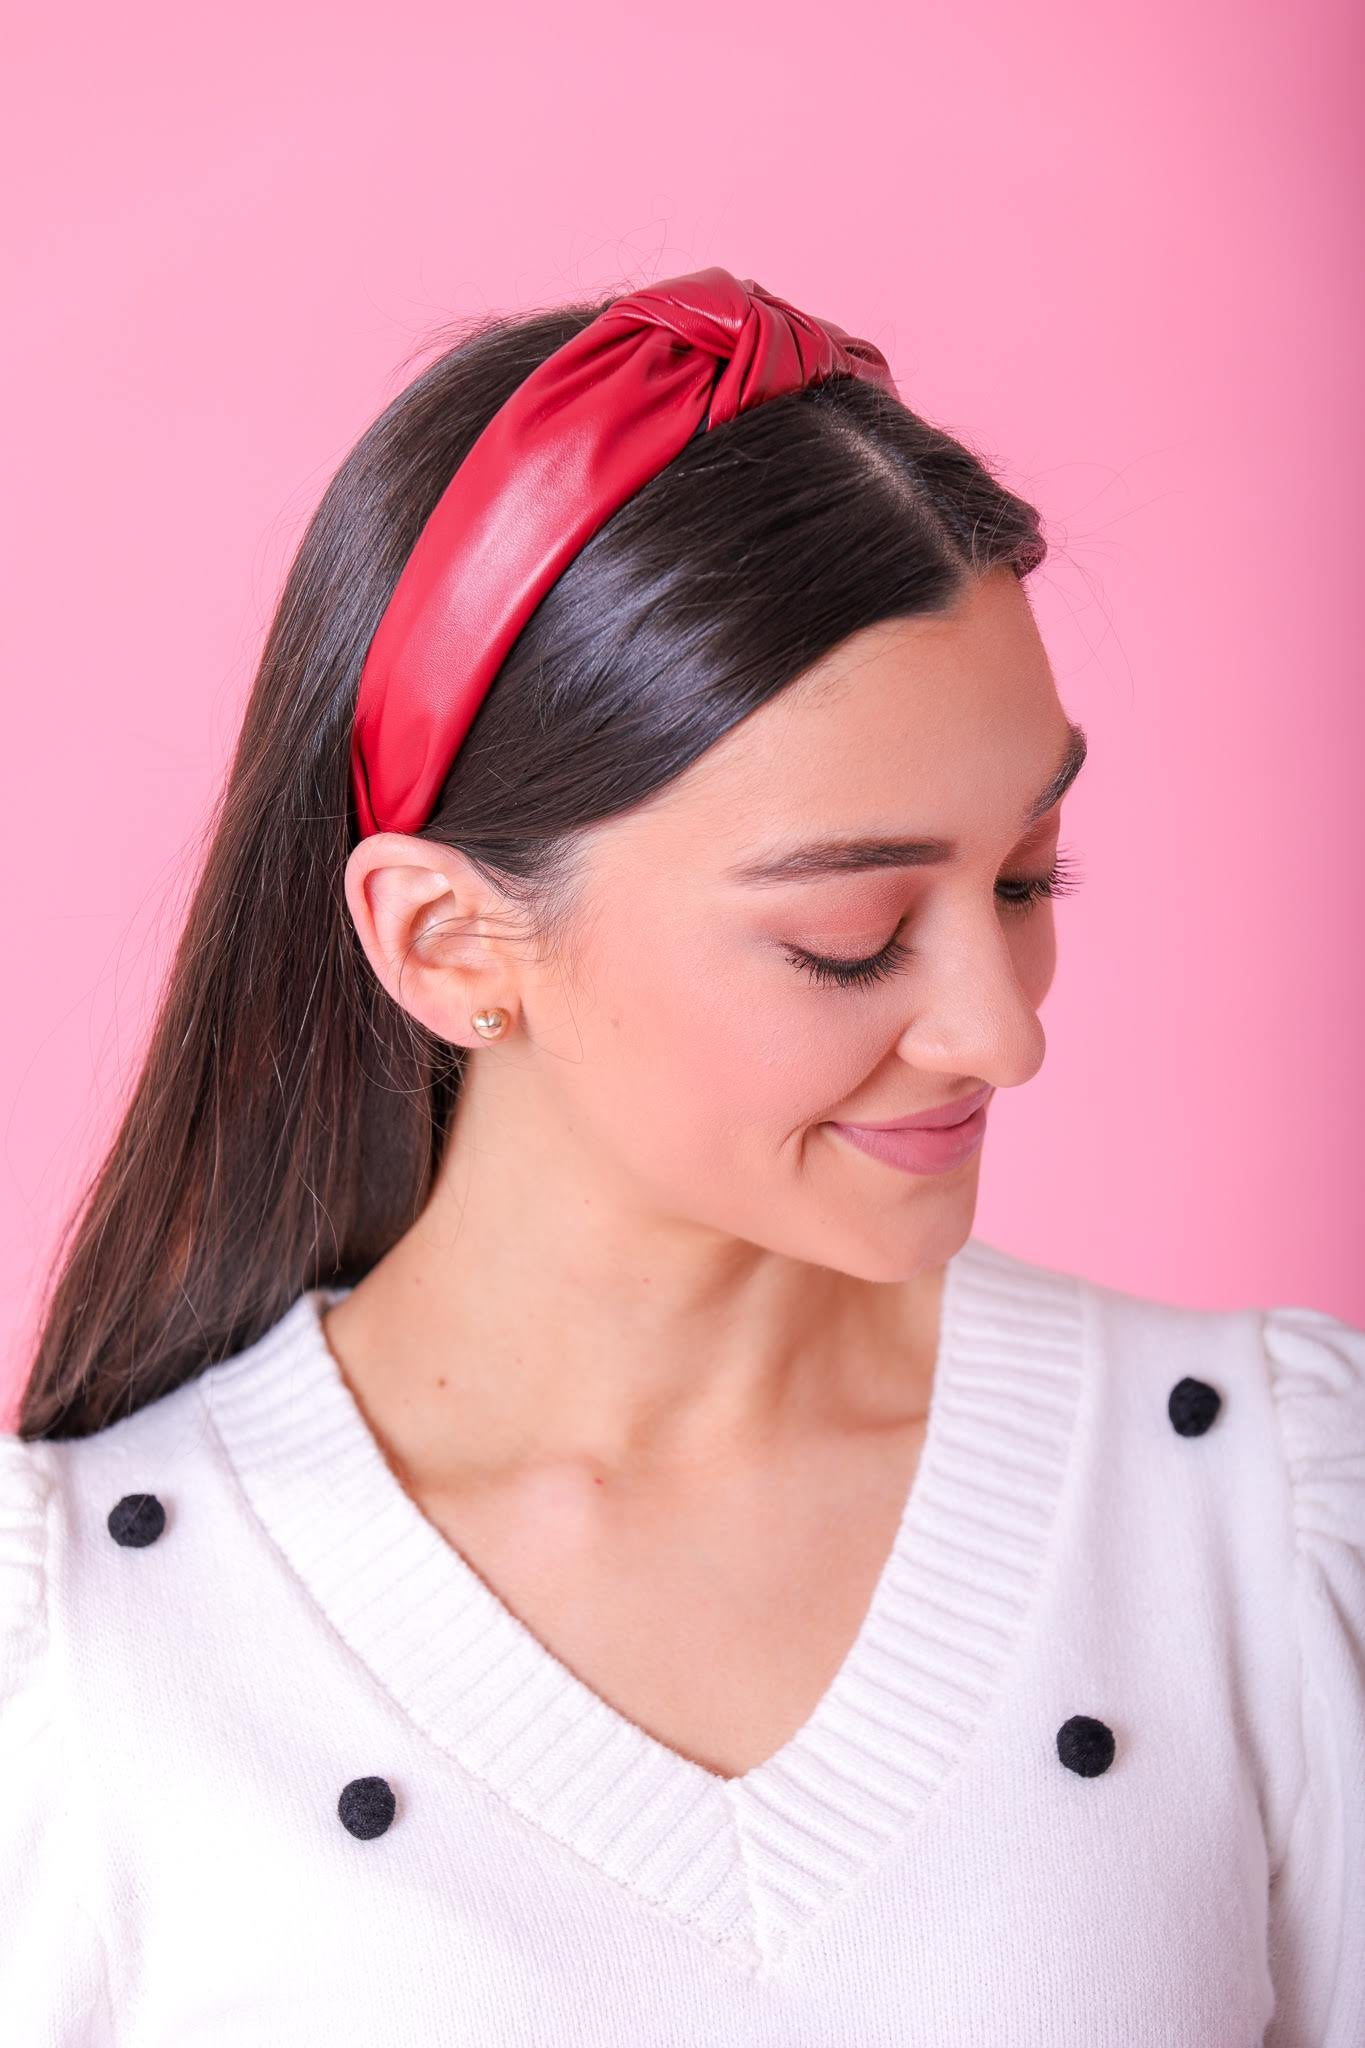 Faux Leather Top Knot Headbands - Red - Hair Accessories - Wight Elephant Boutique